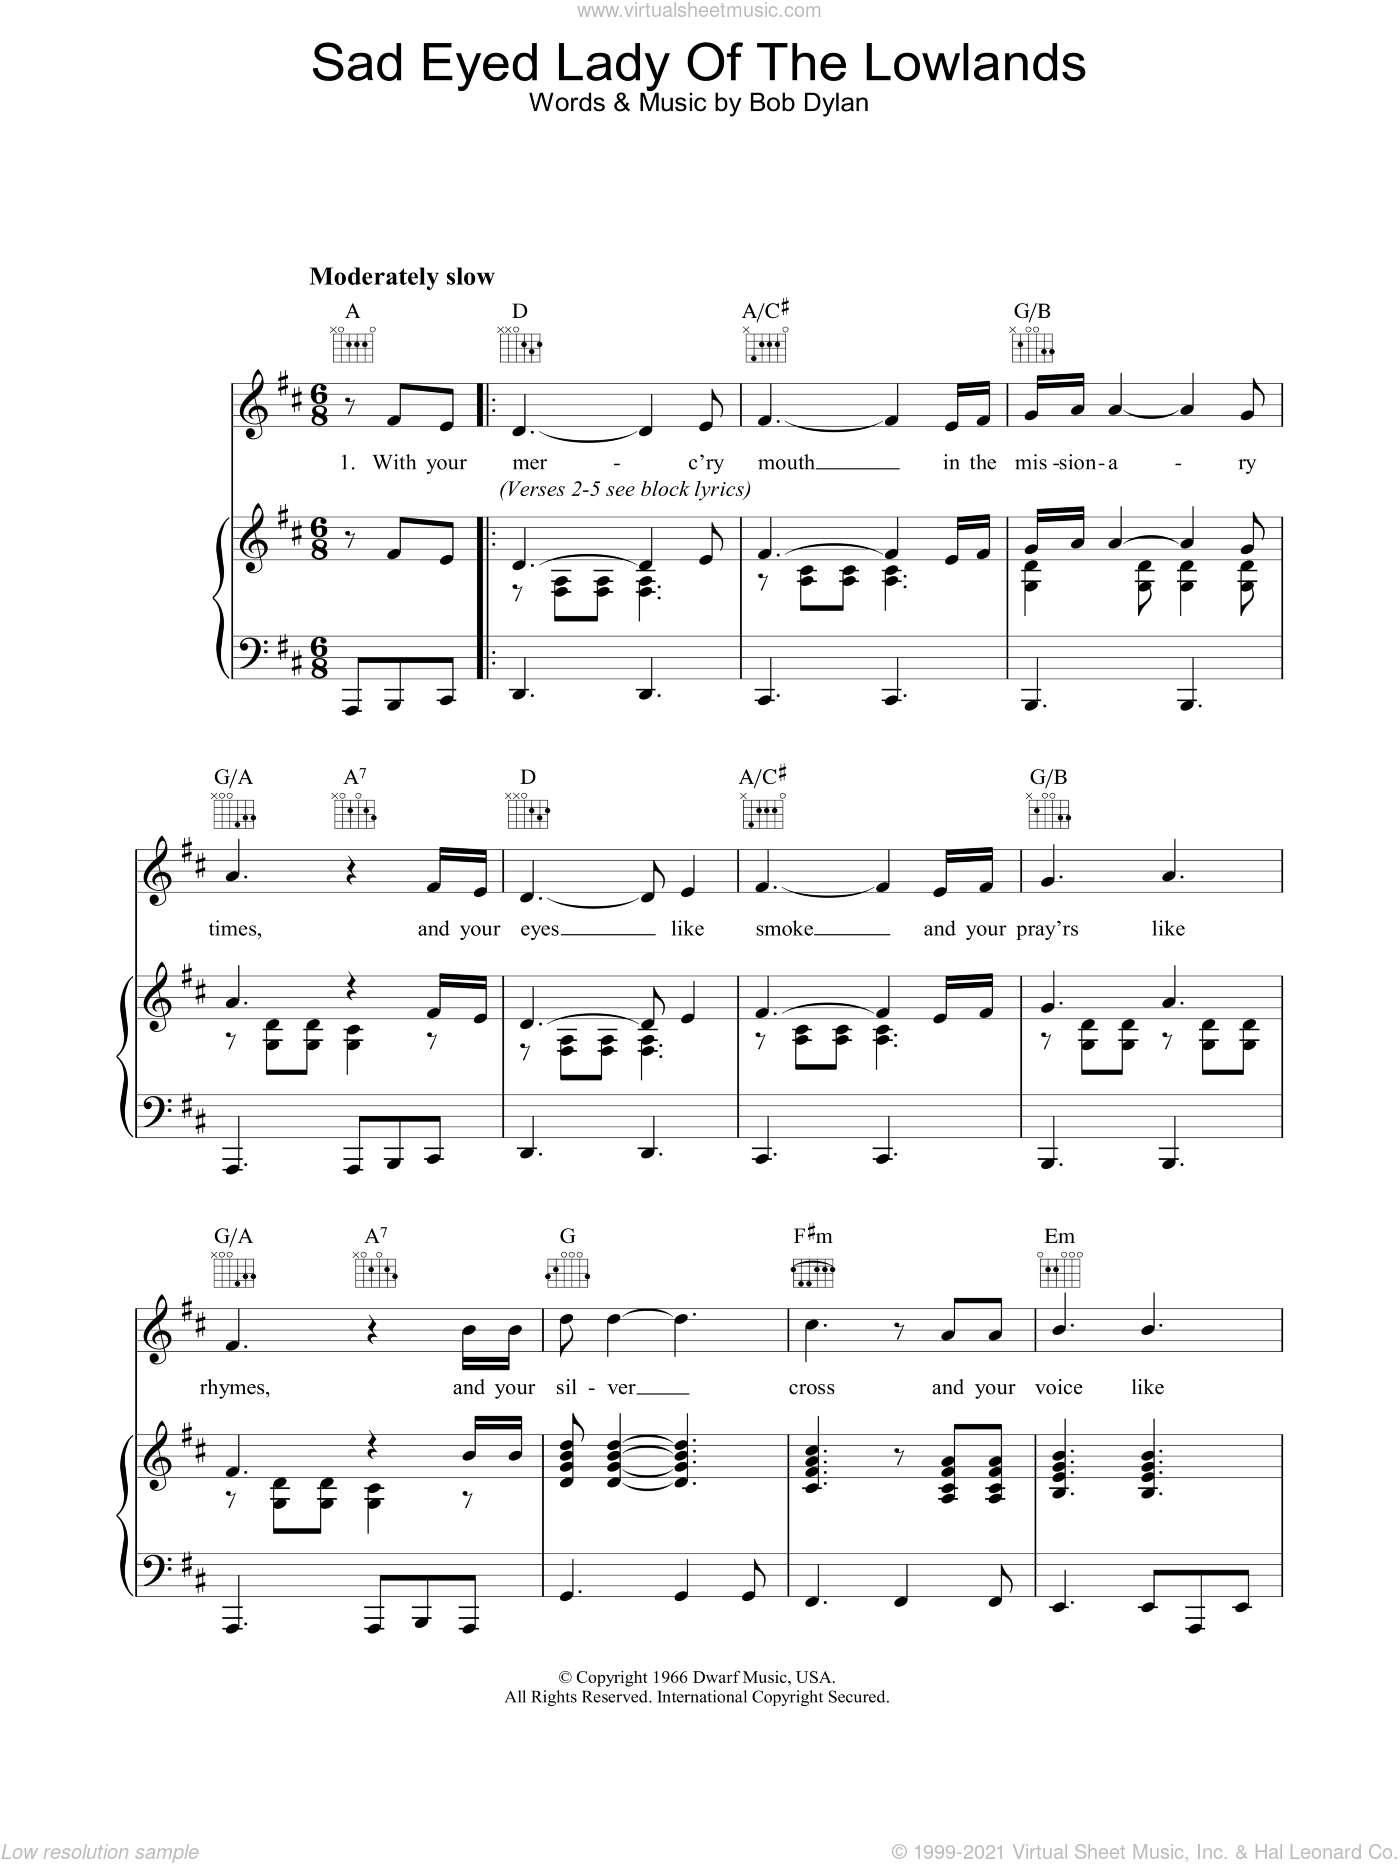 Sad Eyed Lady Of The Lowlands sheet music for voice, piano or guitar by Bob Dylan. Score Image Preview.